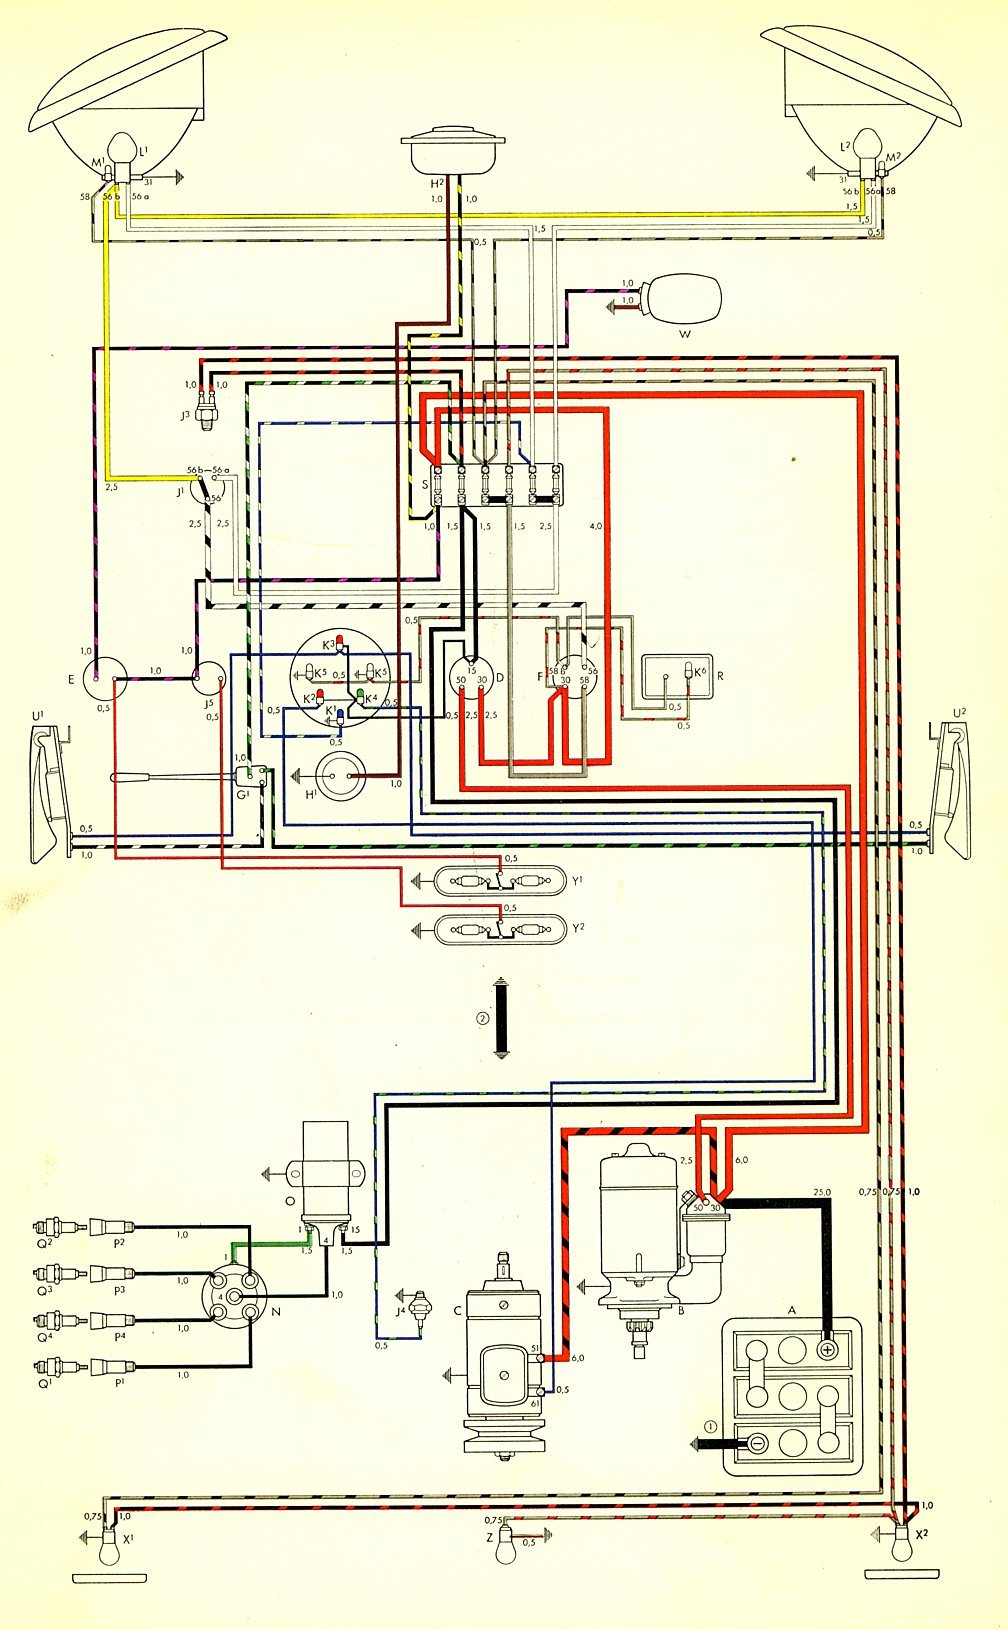 bus_59 wiring diagram for 1971 vw bus readingrat net 1978 vw bus fuse box diagram at love-stories.co